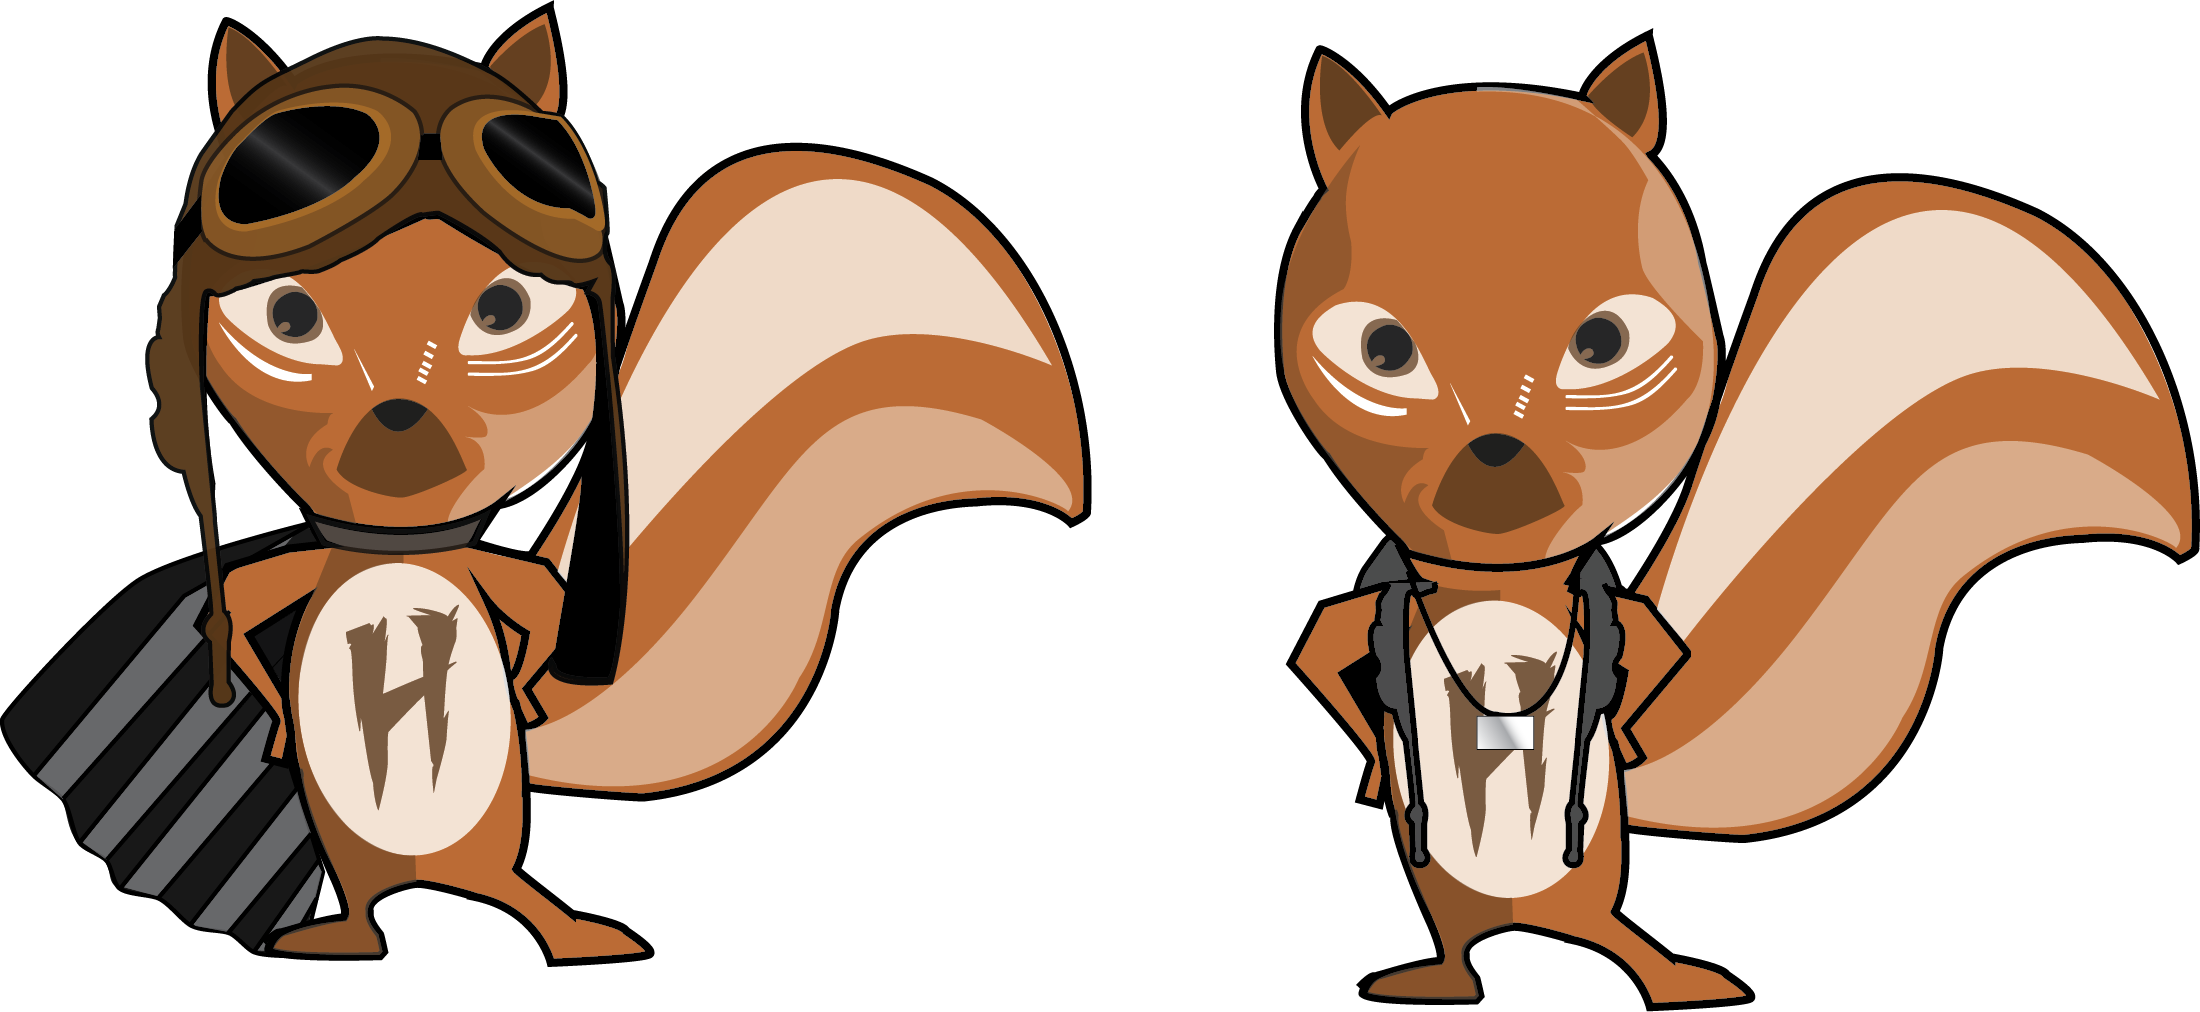 squirrels.png